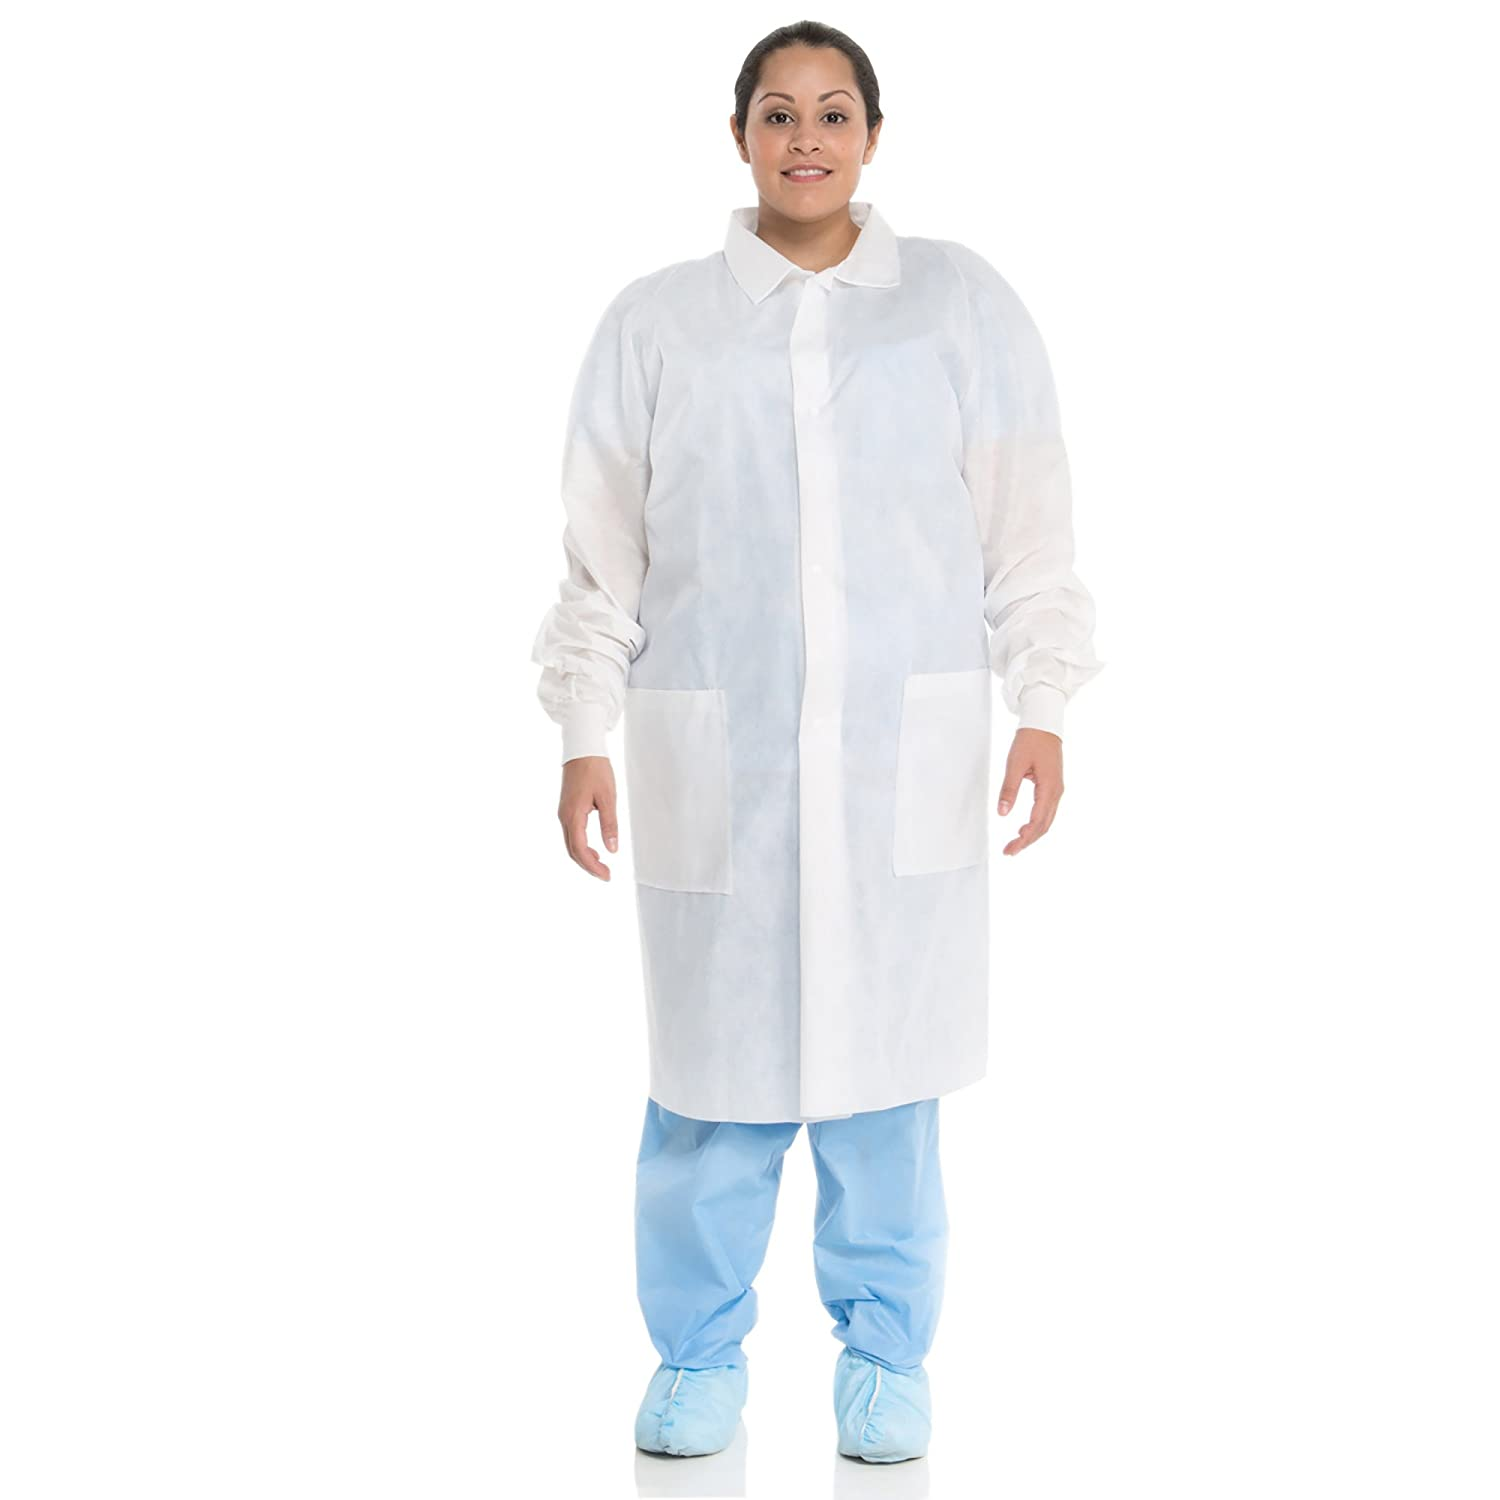 Mid-Calf Length XL Unisex Protective 3-Layer SMS Fabric Knit Cuffs 10123 White 25 // Case Kimberly-Clark Professional Kimtech A8 Certified Lab Coats with Knit Cuffs